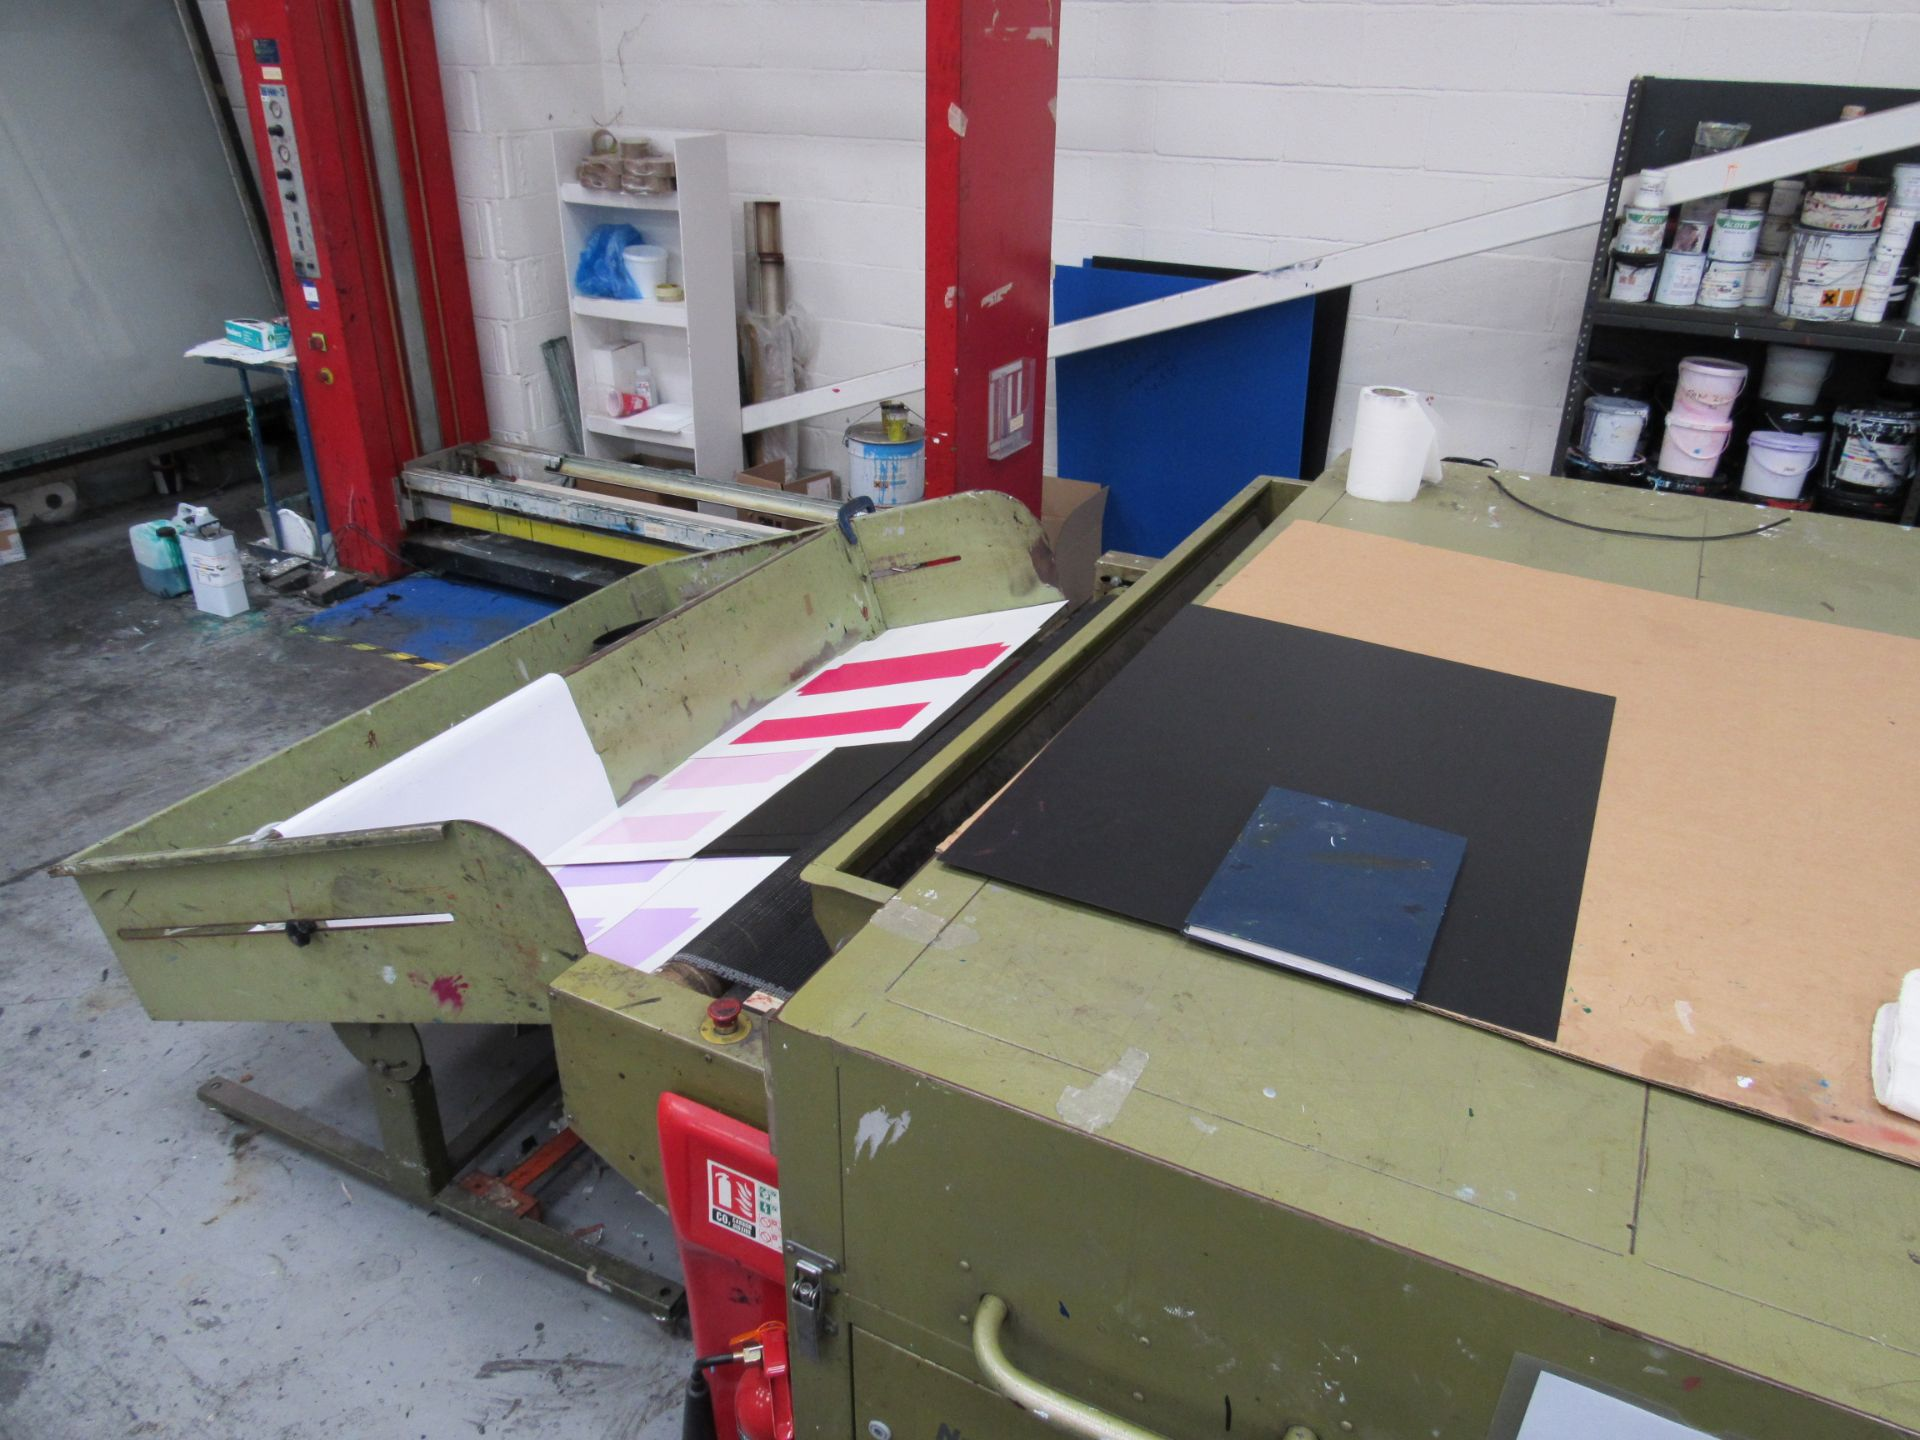 Sias Print Serifast 117.180 Screen Printer Serial Number 88745 with Natgraph 155-2000E UV Dryer Line - Image 9 of 10